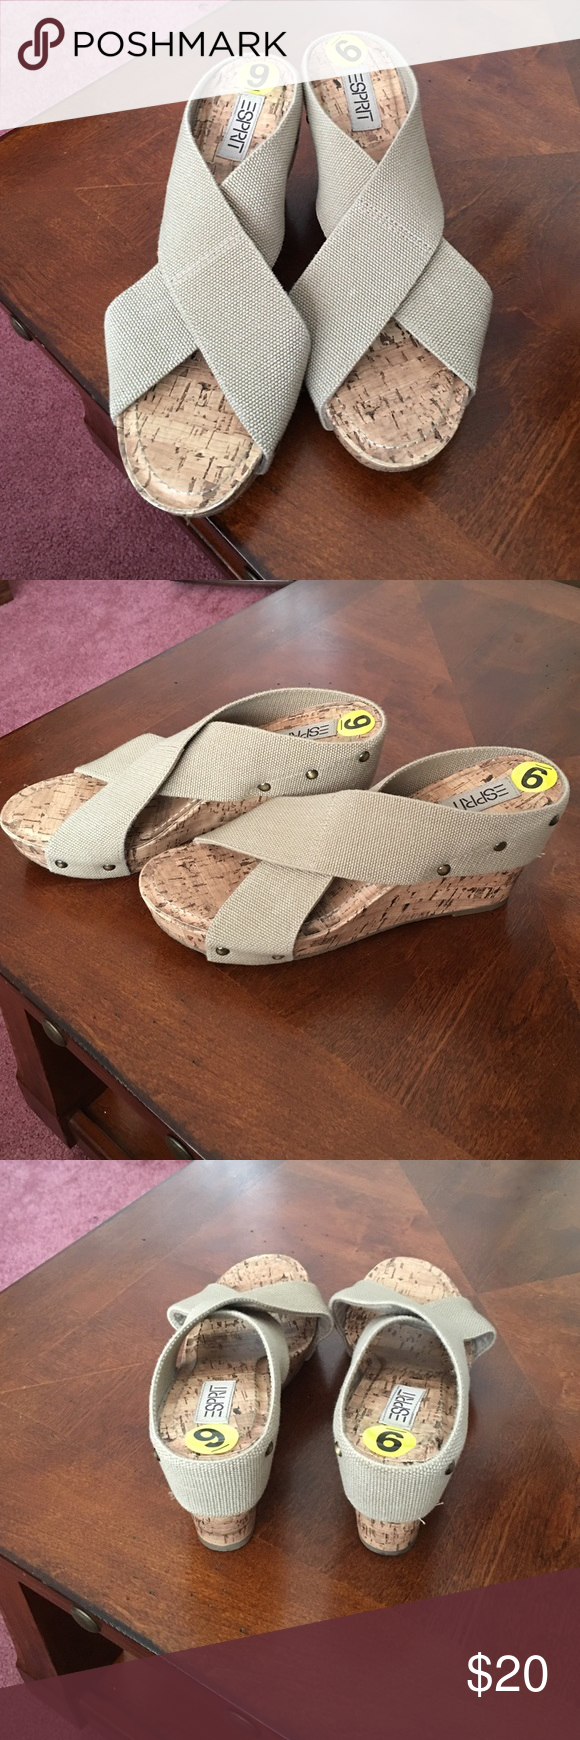 Sandals Super comfy and casual sandal with elastic cotton straps, perfect for that walk on the beach Boardwalk  ESPRIT Shoes Sandals